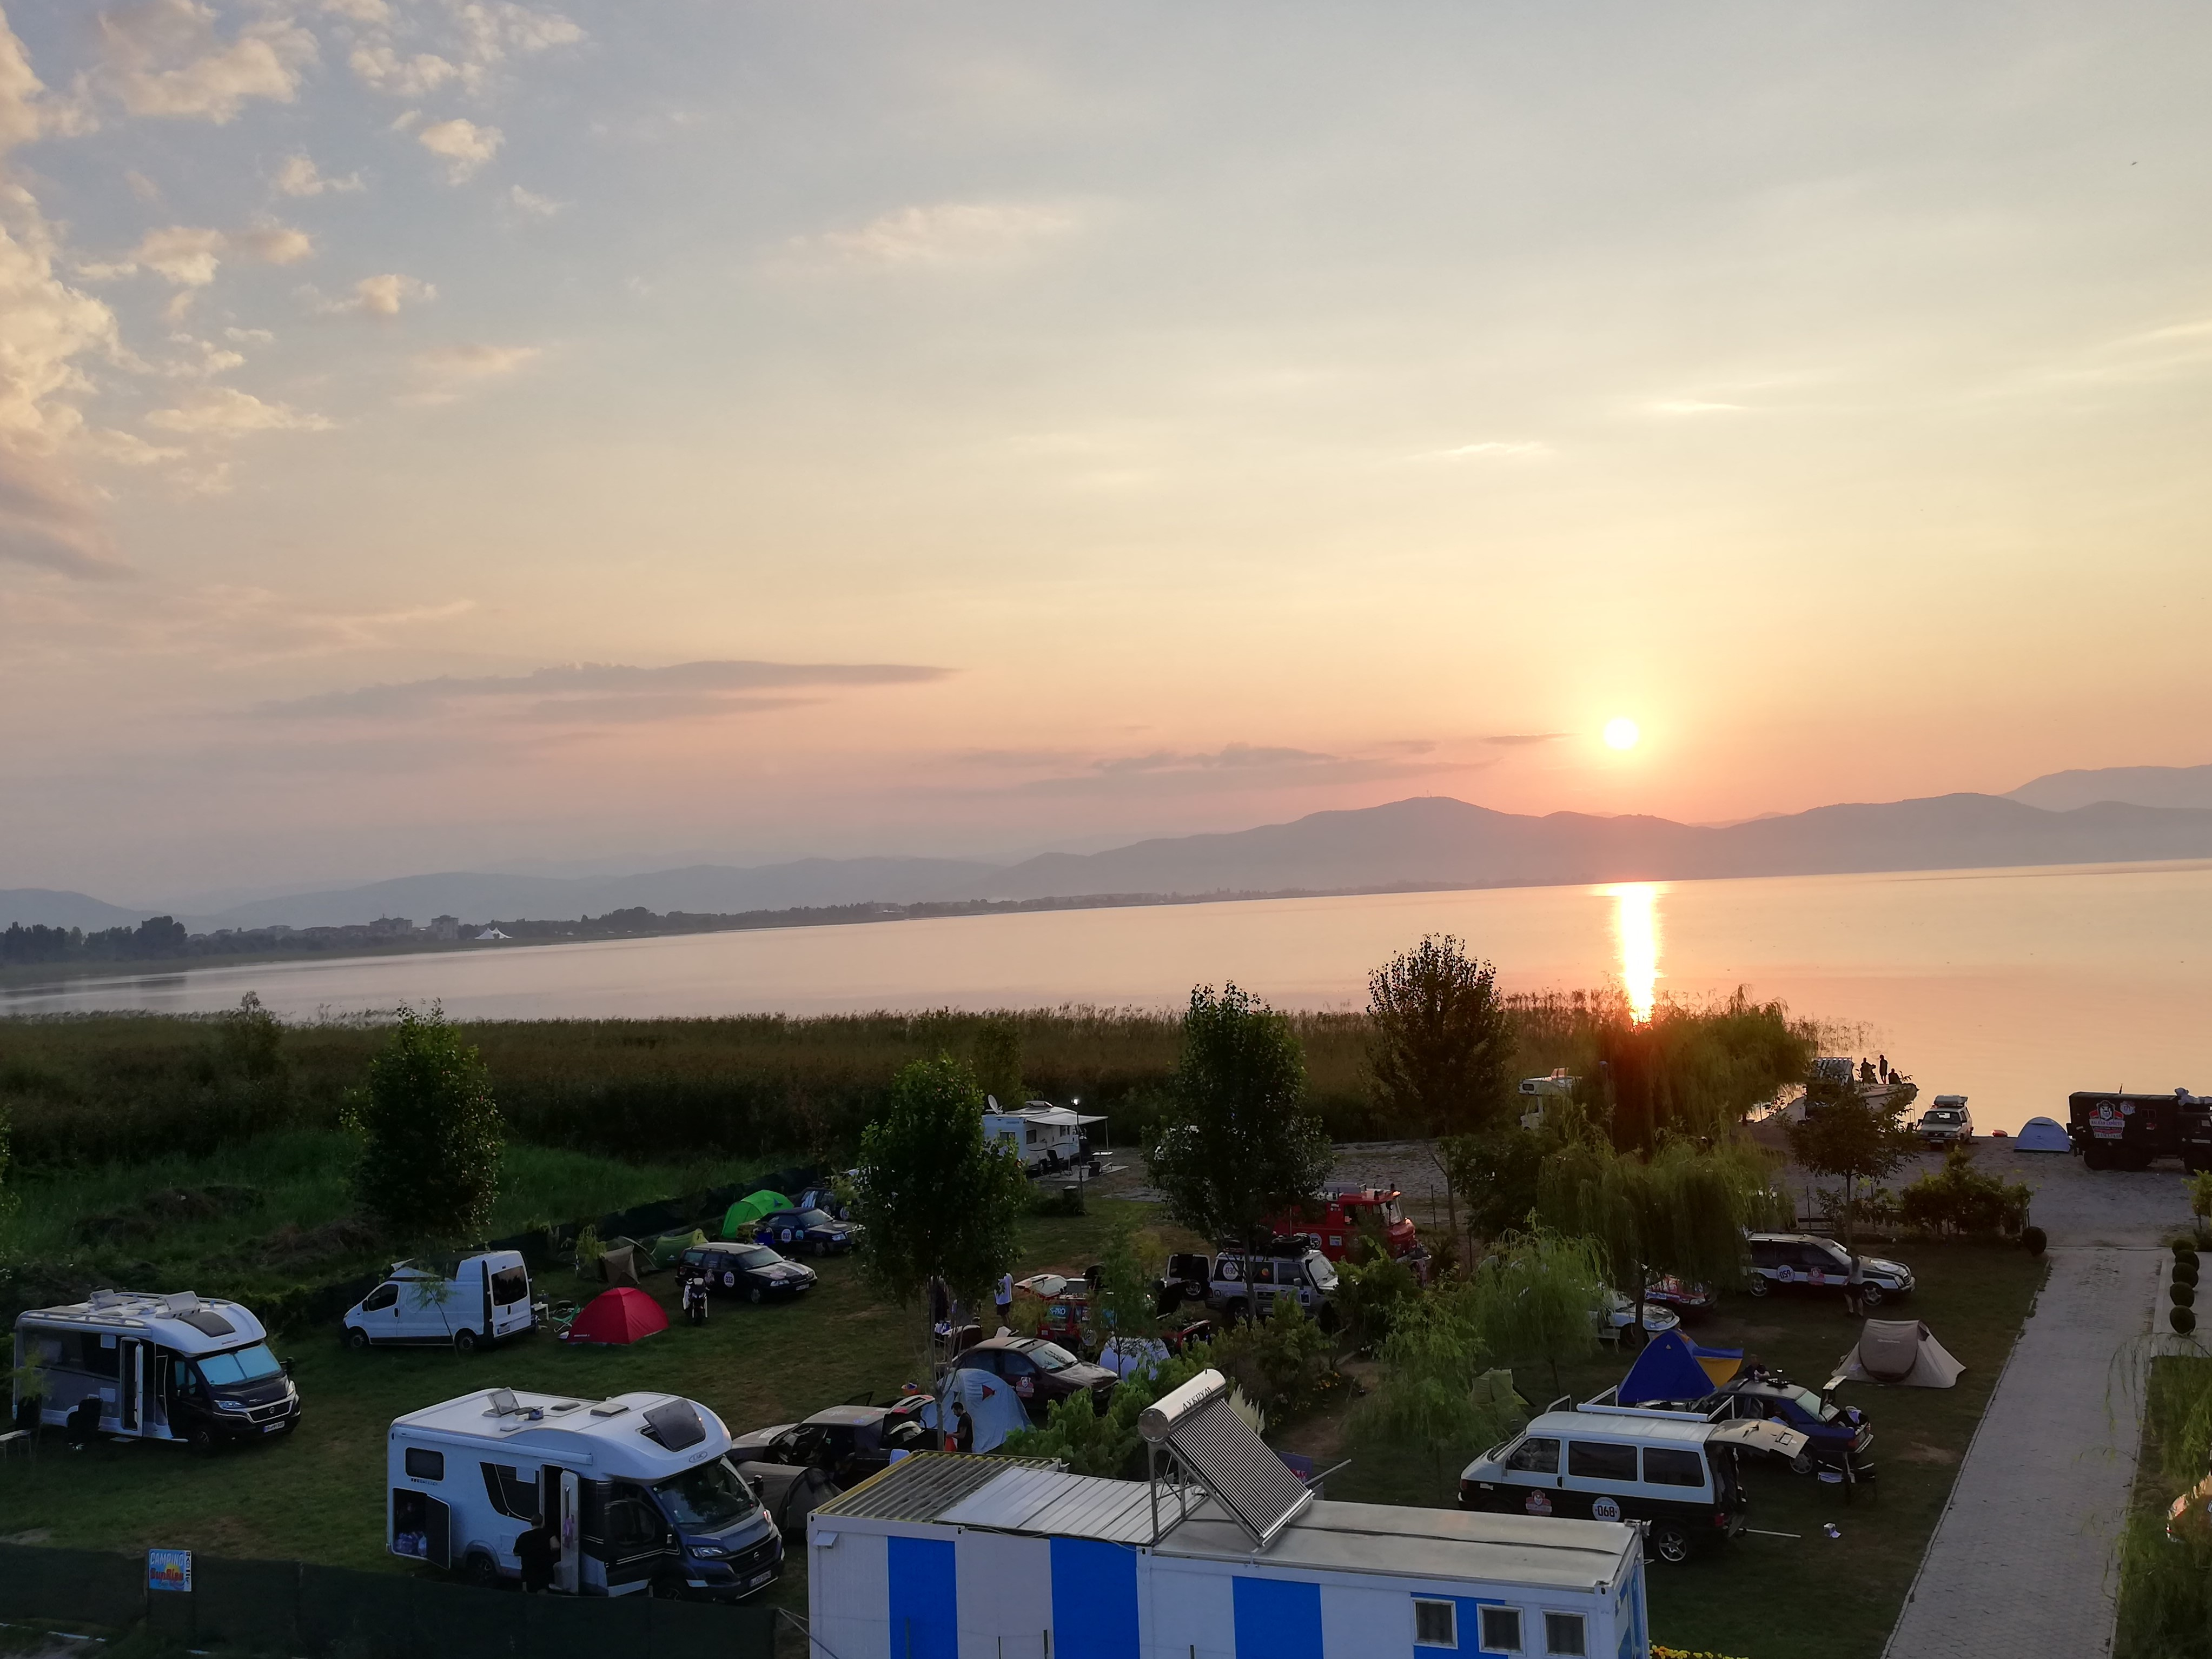 Camp Sunrise, Kalishta, Struga